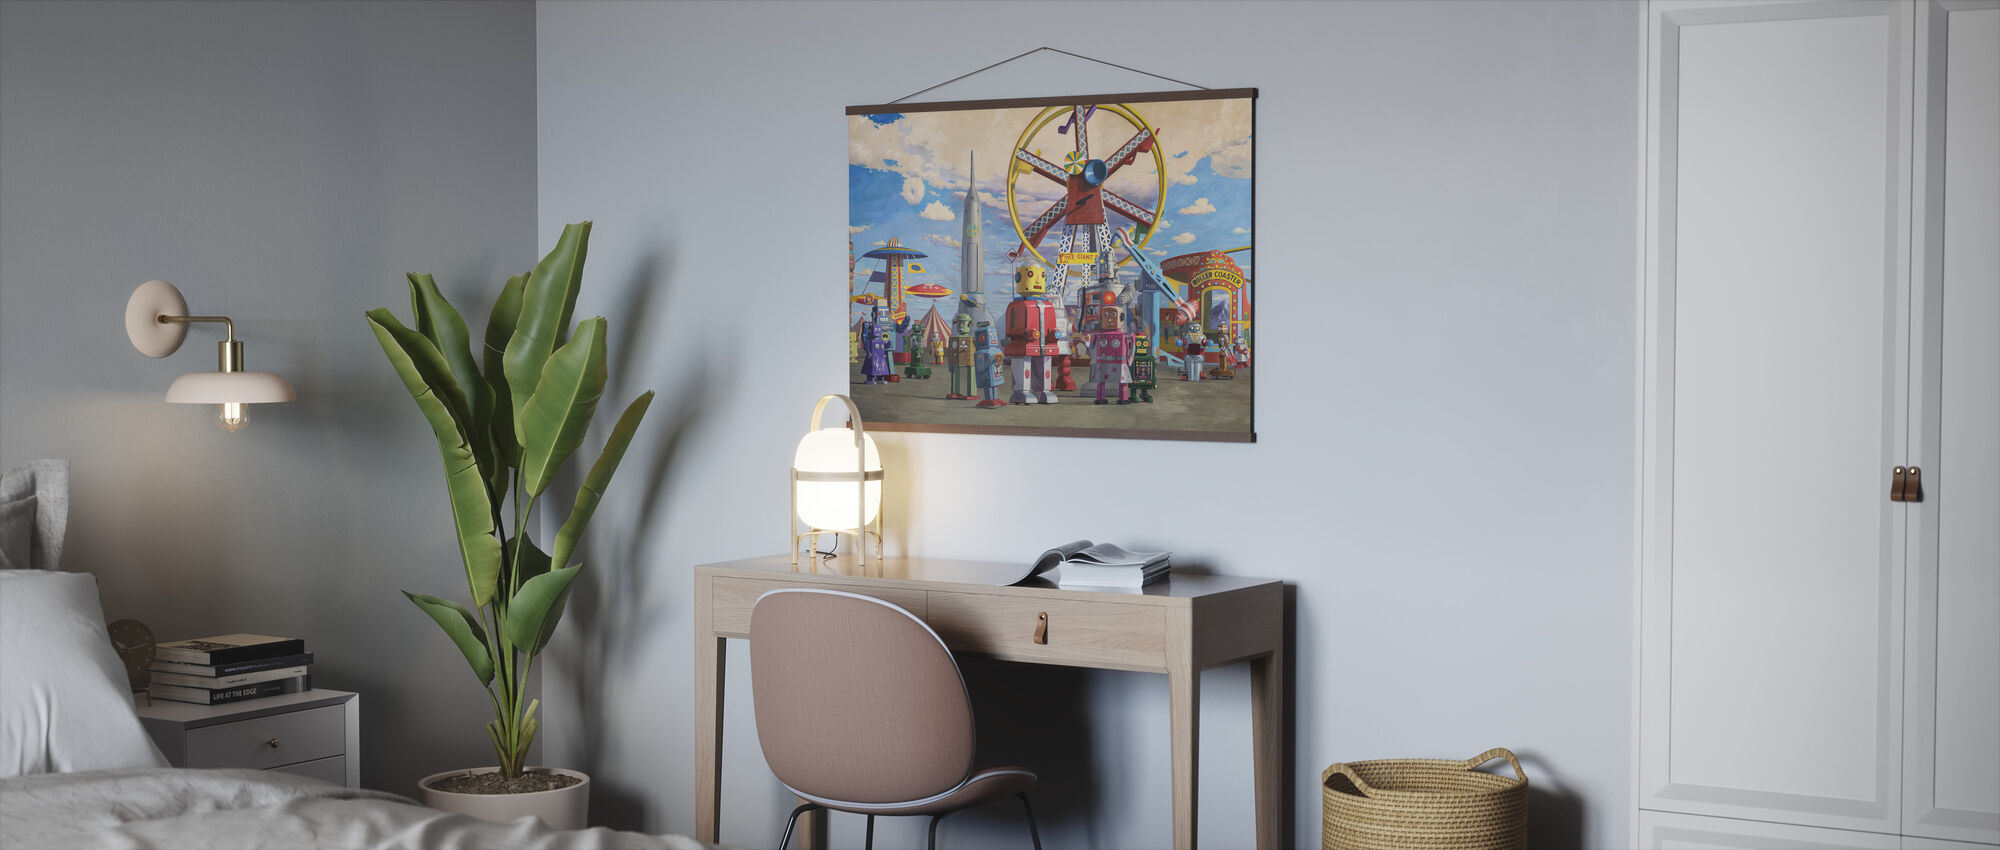 Fairgrounds - Poster - Office